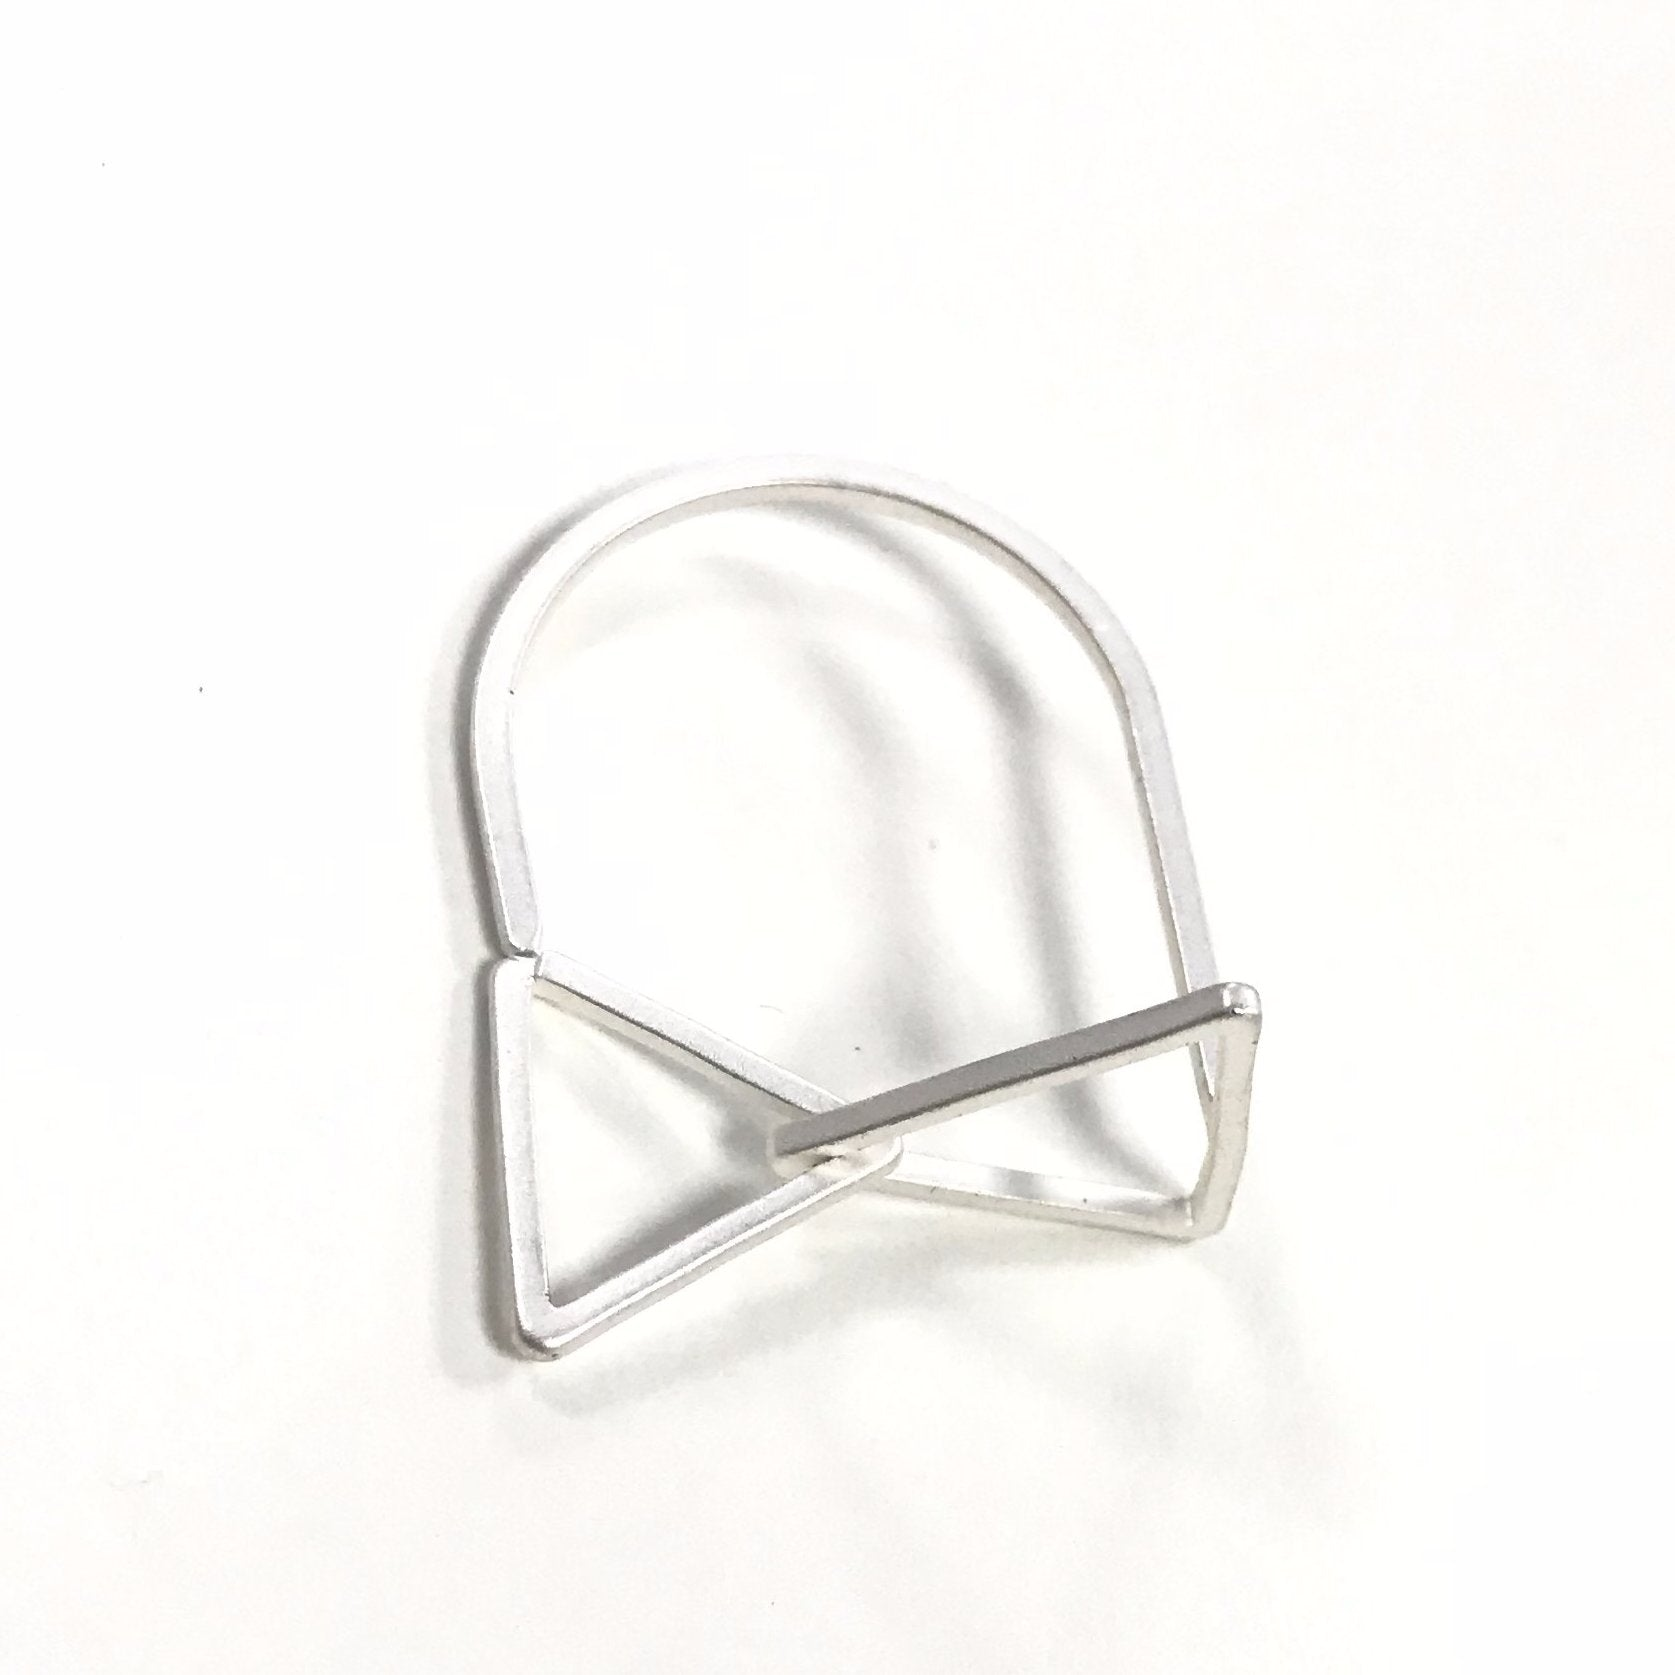 Matt Silver Dainty Triangle Stackable Ring Gifts Under £10